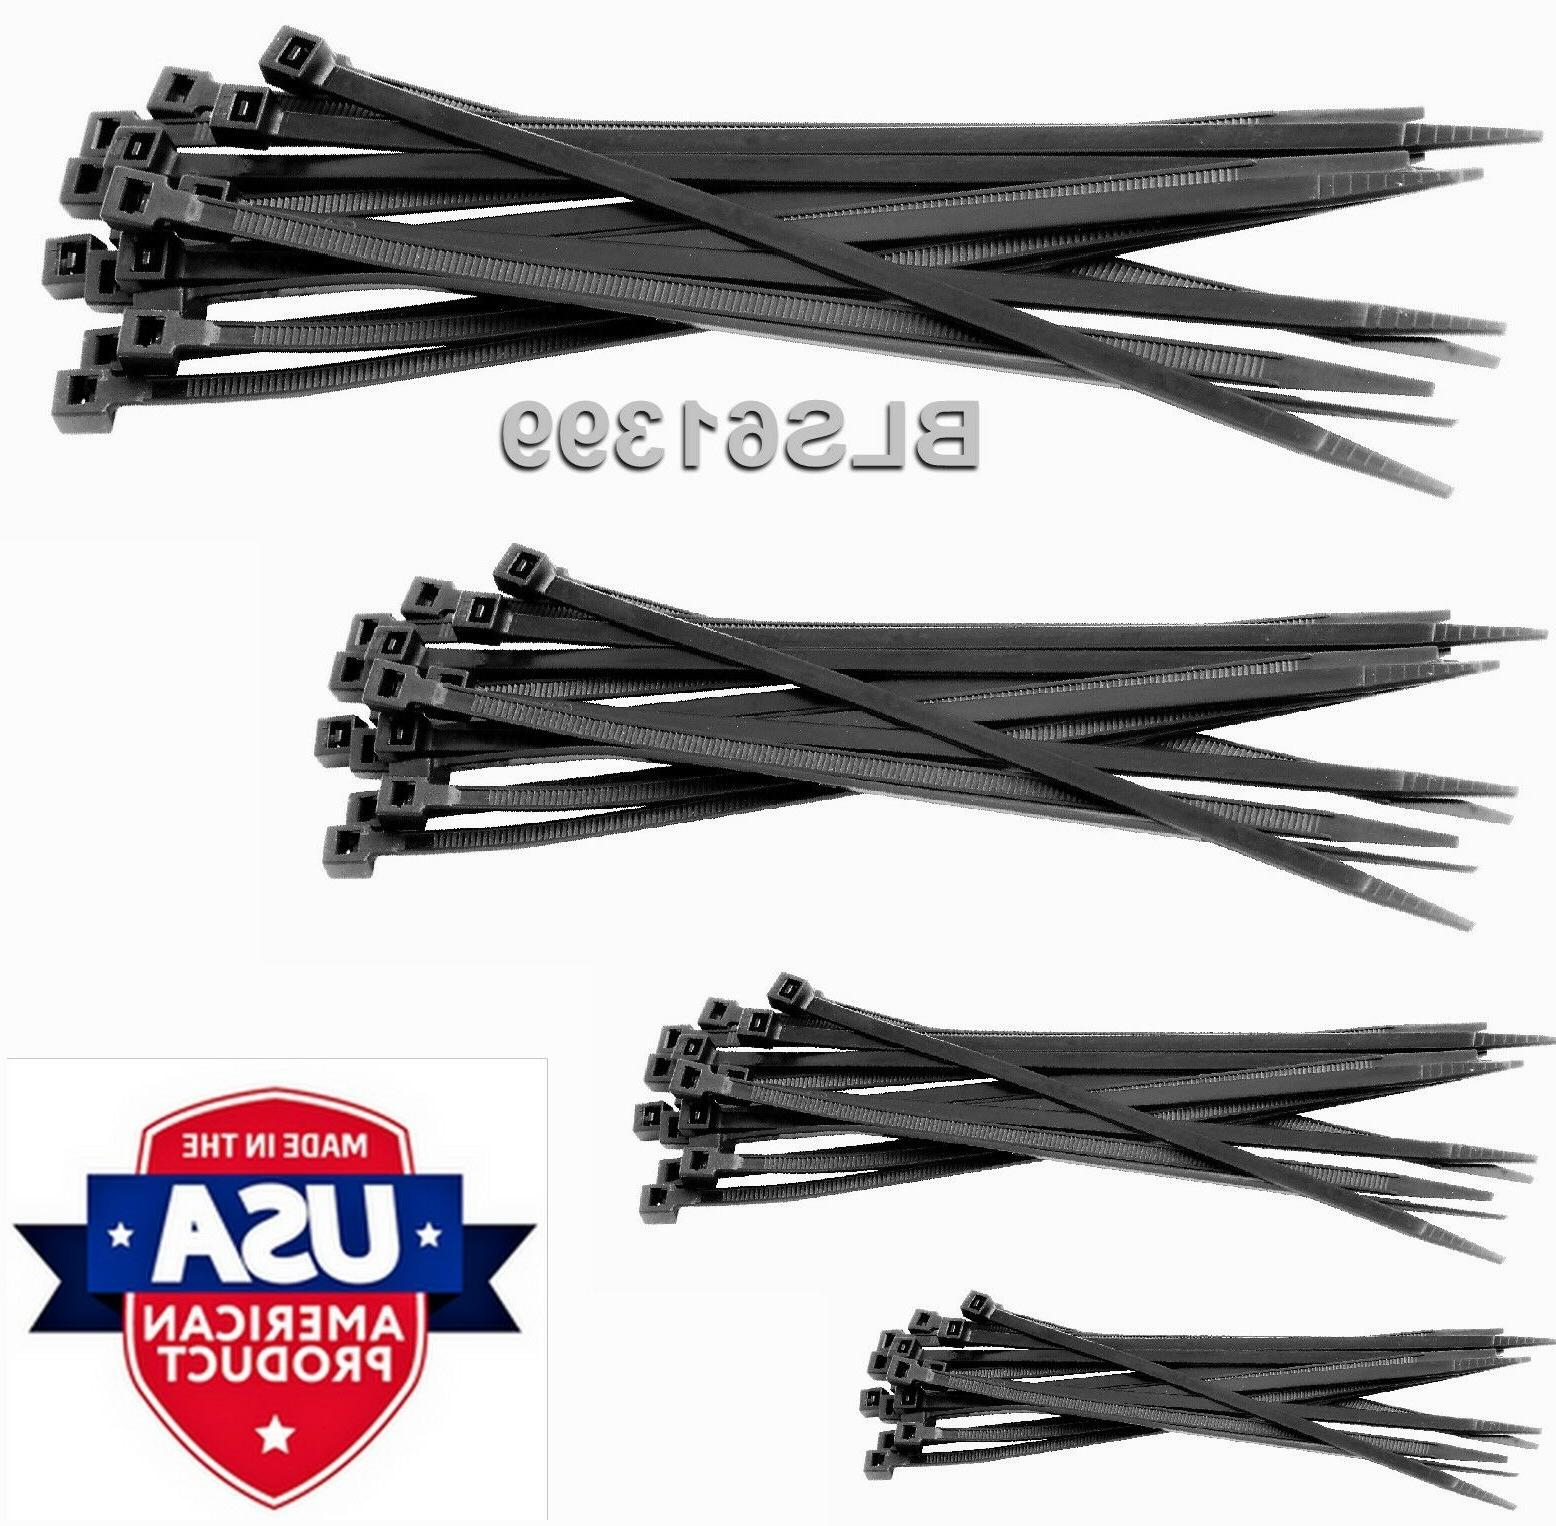 300 TIES 8 inch Cable Ties Tie Wraps